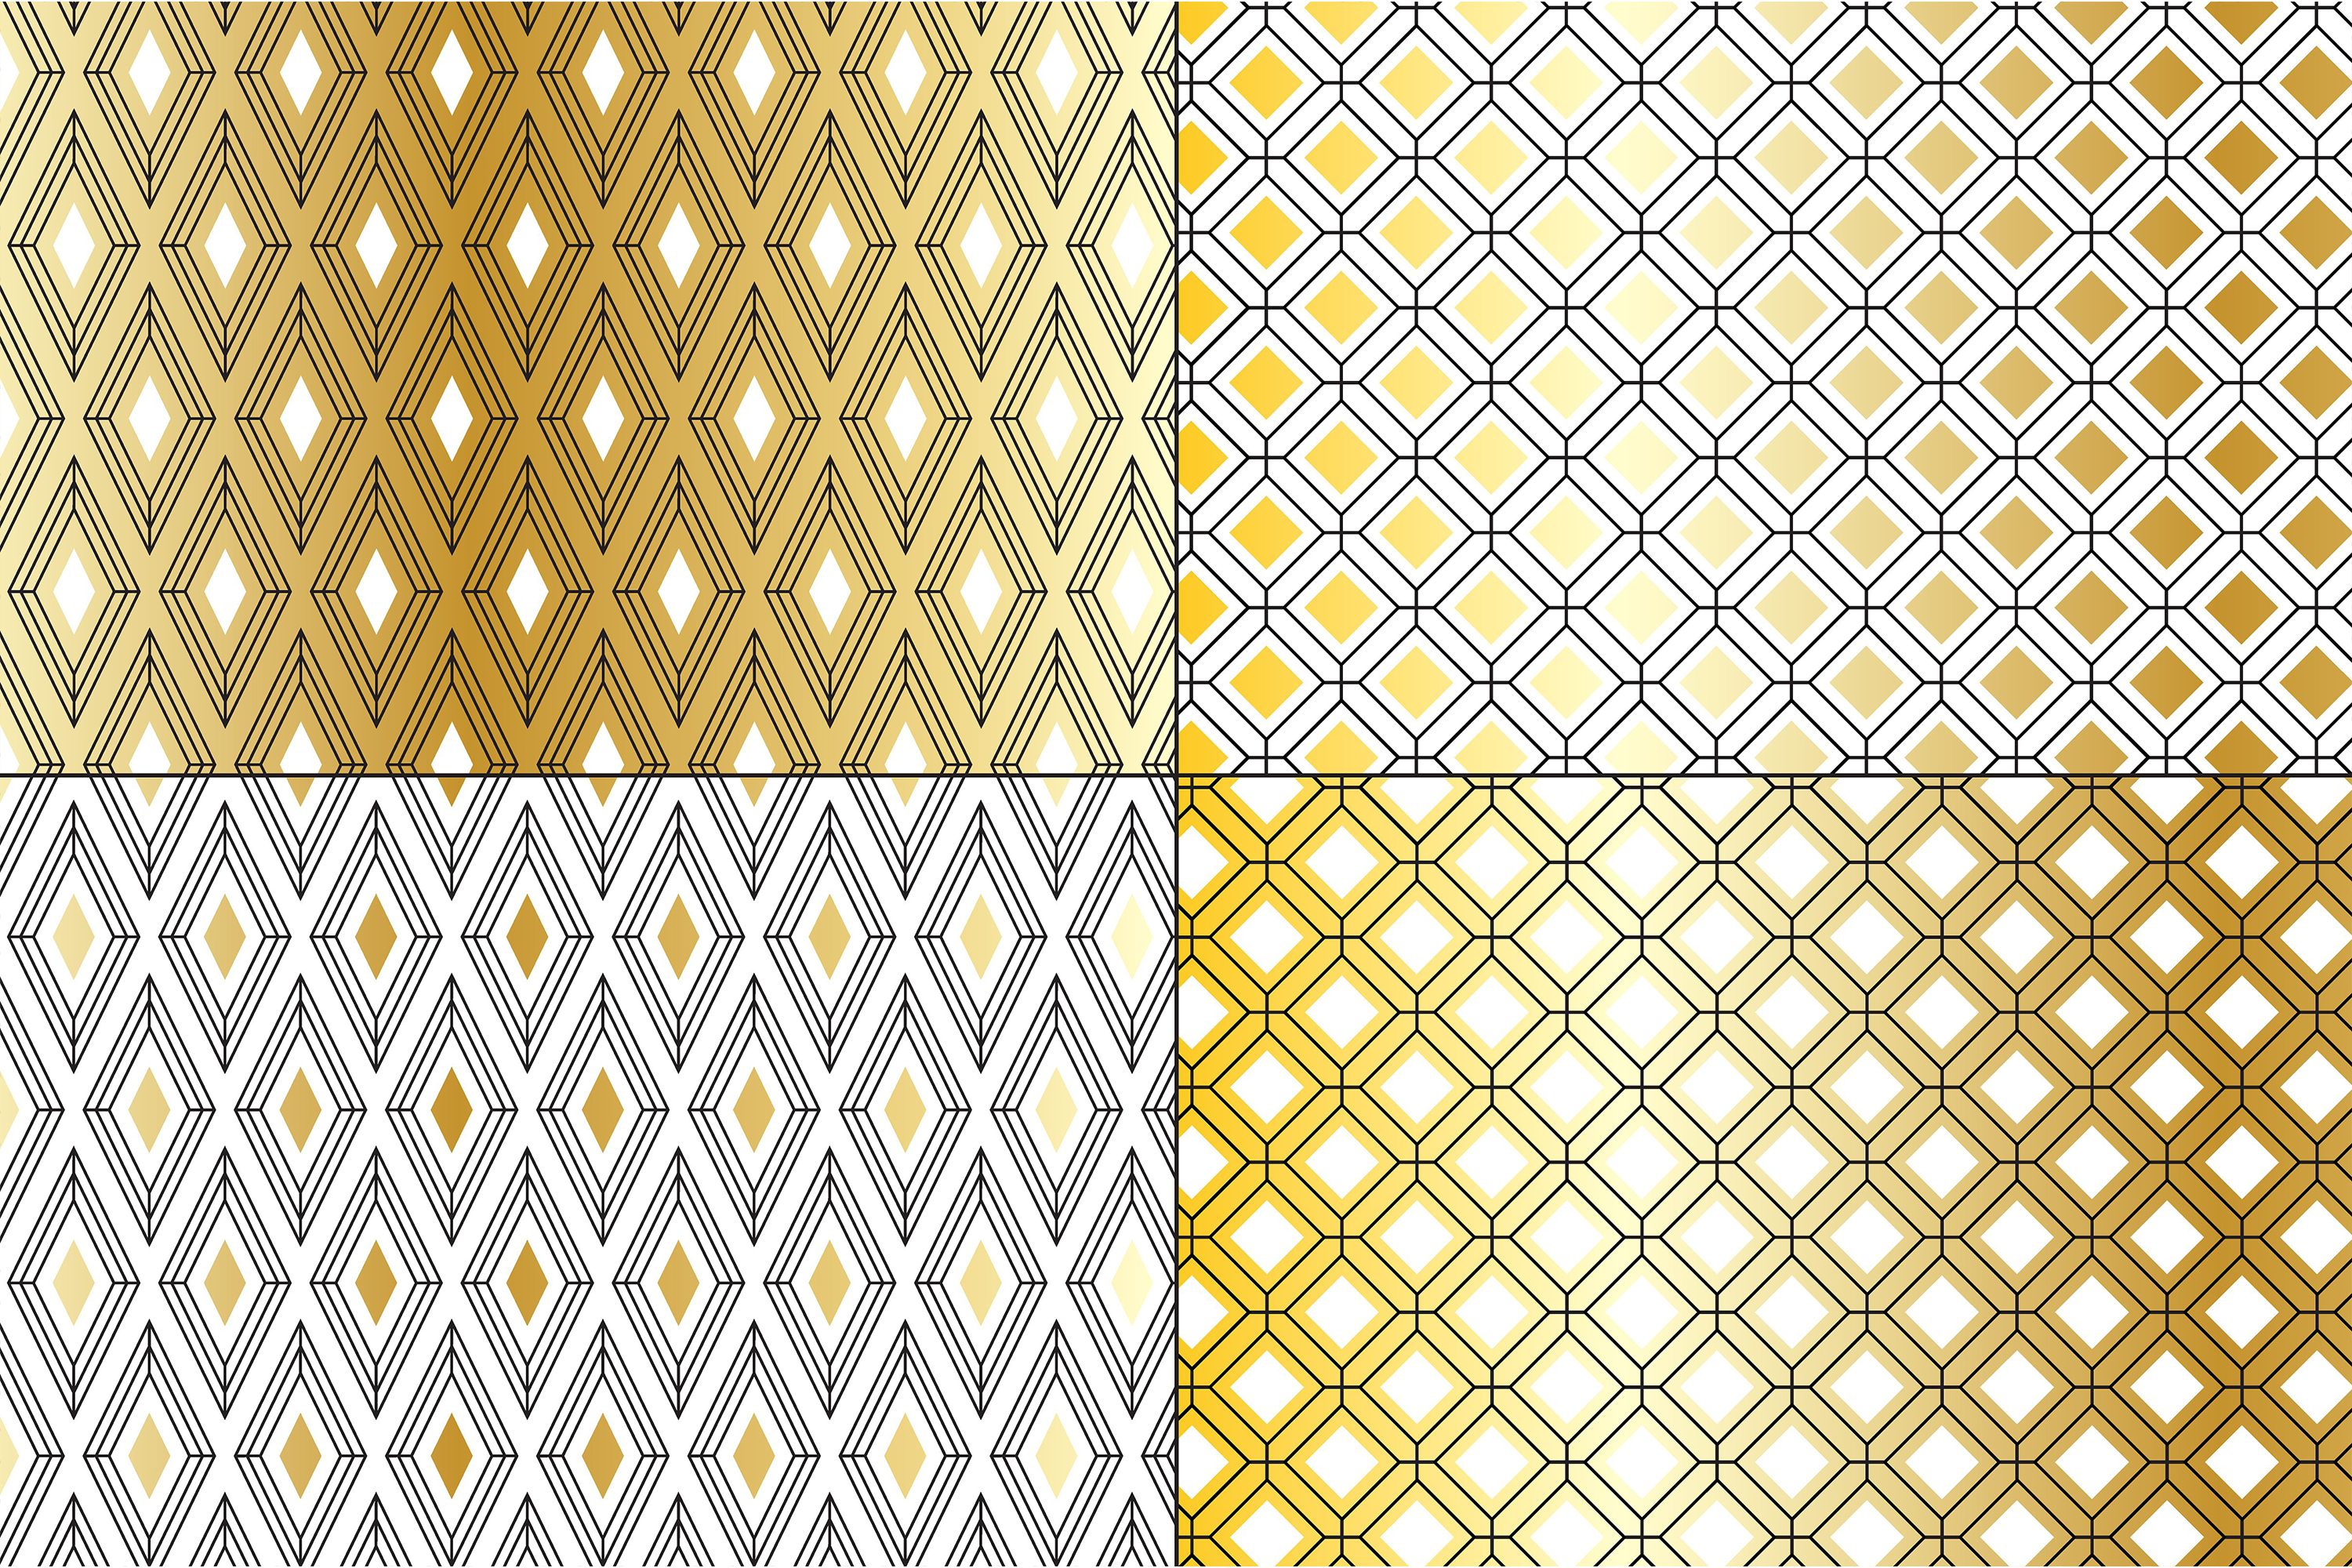 Gold Deco Patterns example image 2